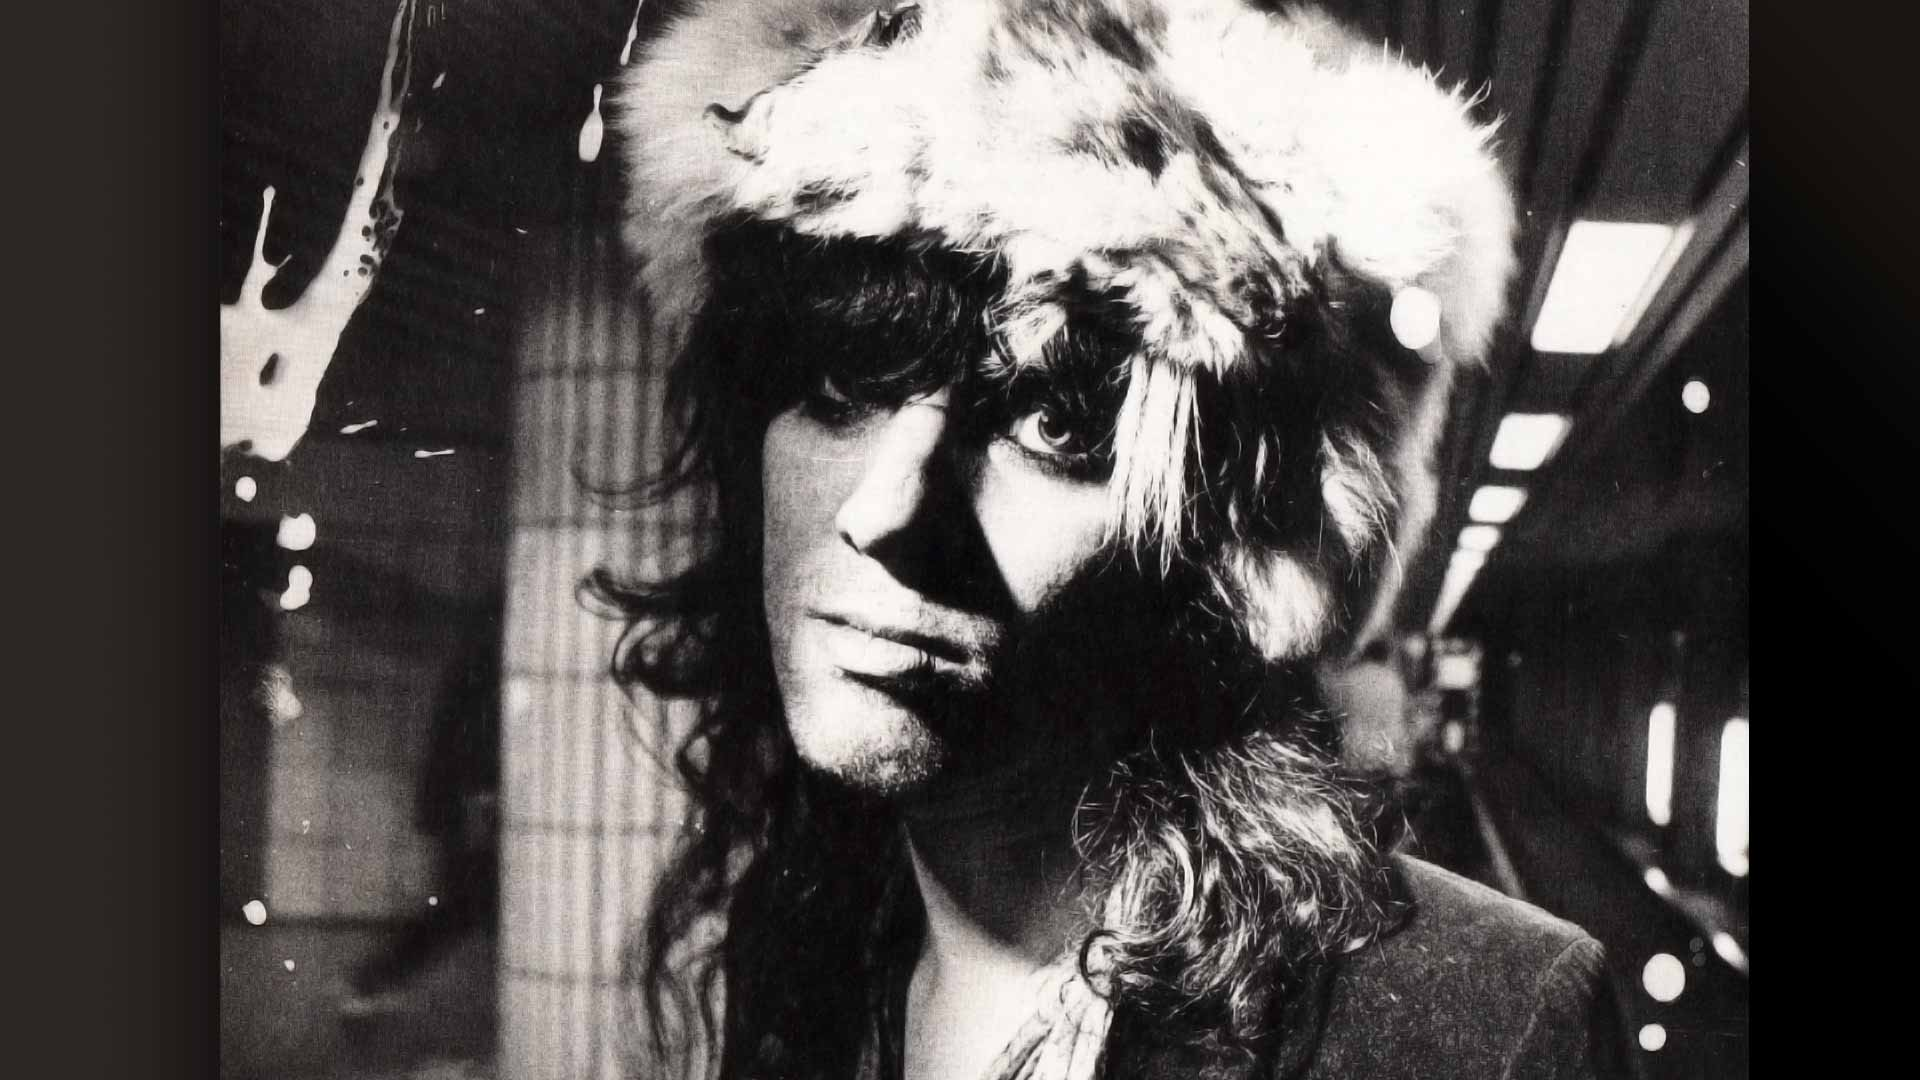 Remembering Dave Kusworth